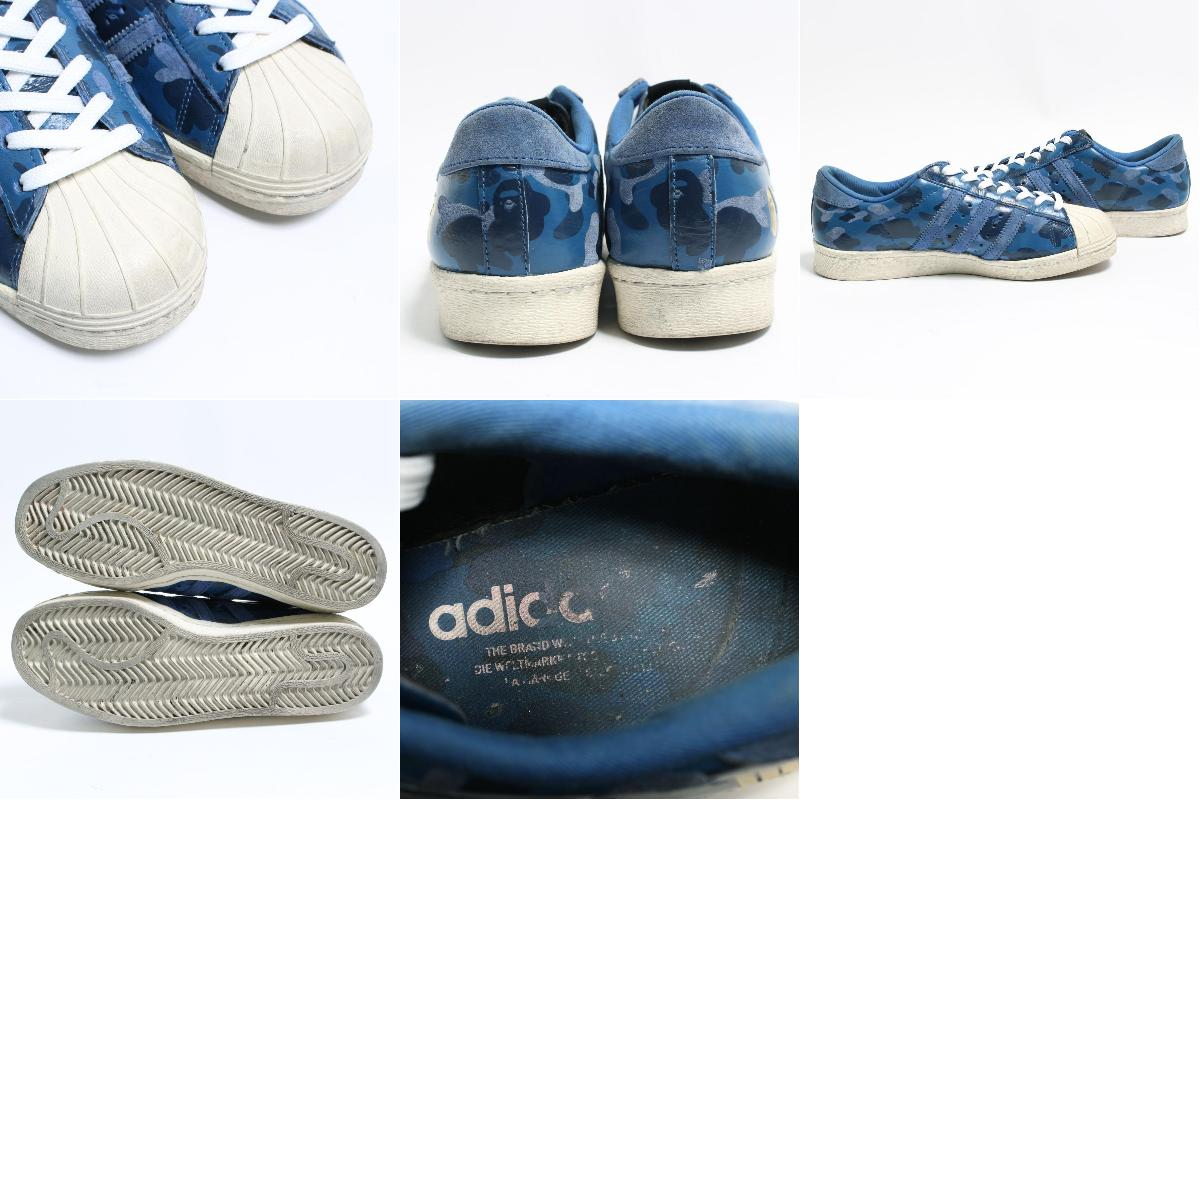 Rare triple name Adidas adidas X Undefeated X Bape SUPERSTAR superstar 80s sneakers US6 Lady's 24.0cm bon4924